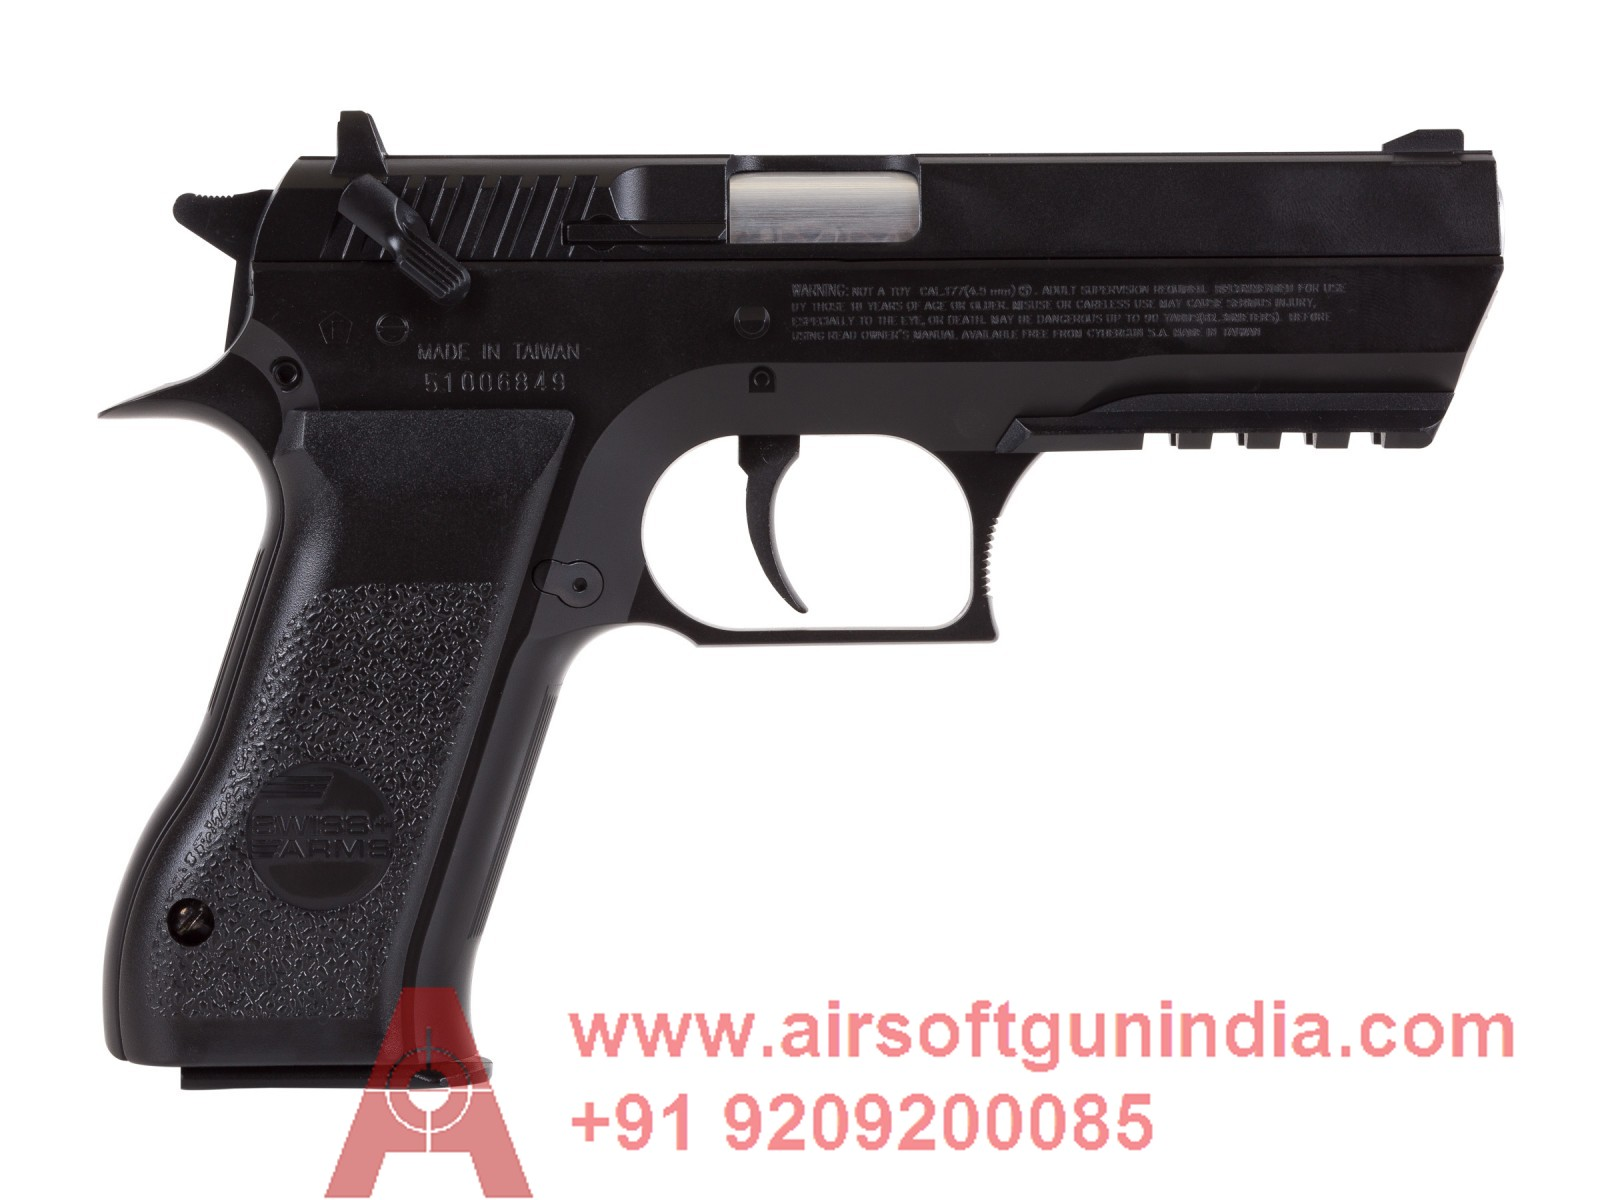 Swiss Arms 941 CO2 Pistol By Airsoft Gun India